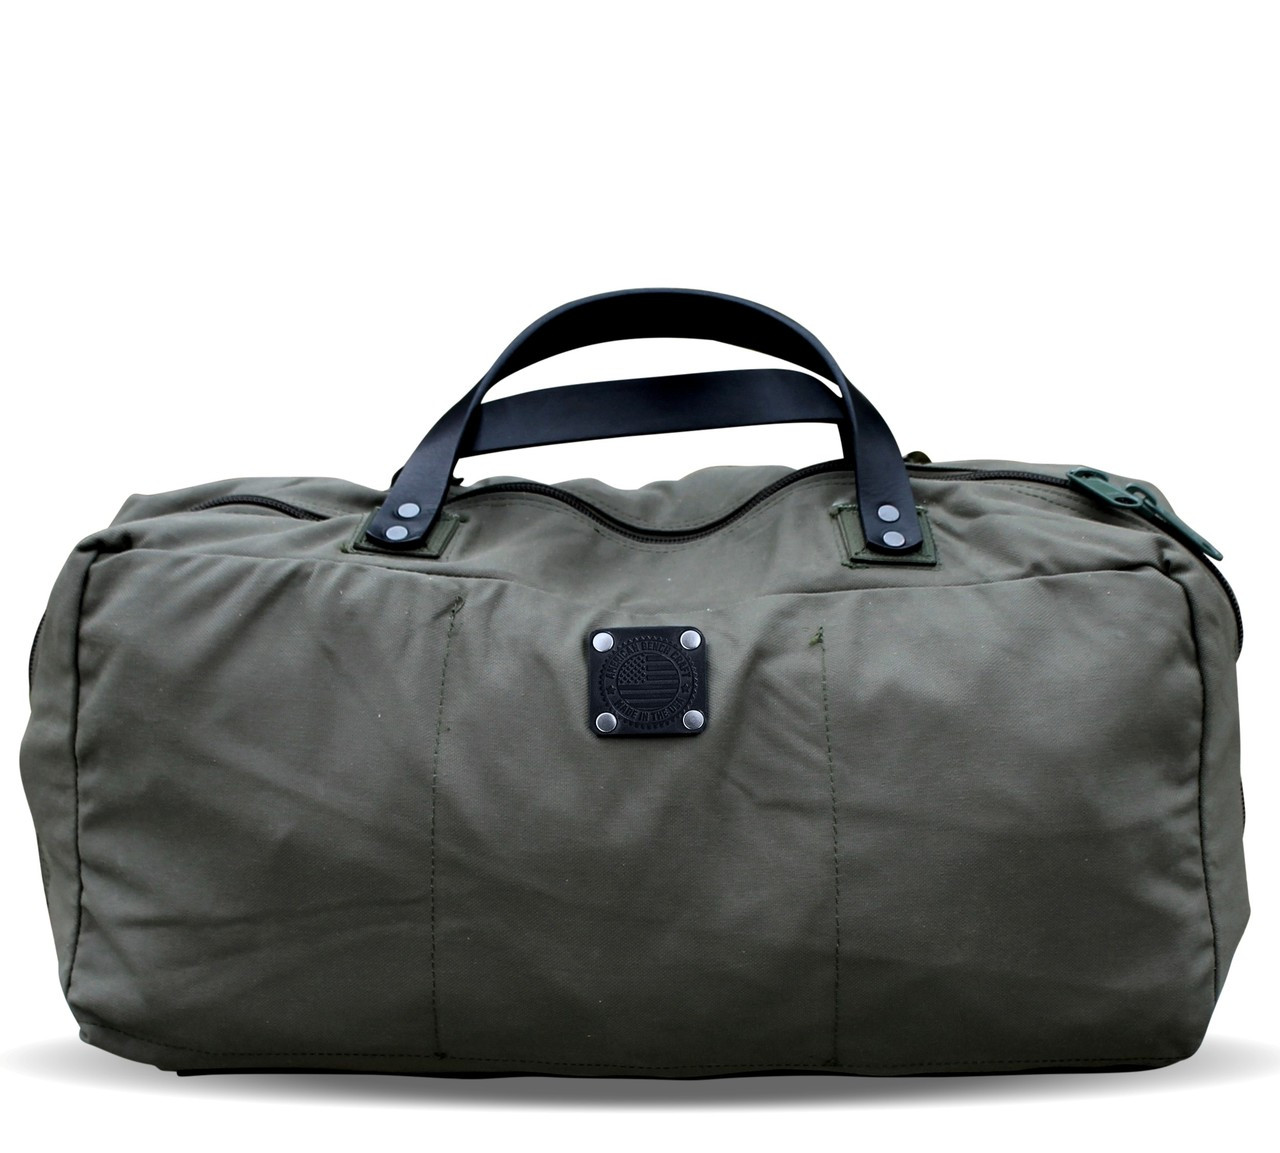 519b42a87e7 American Bench Craft   Rescued Army Surplus Canvas Duffel Bag